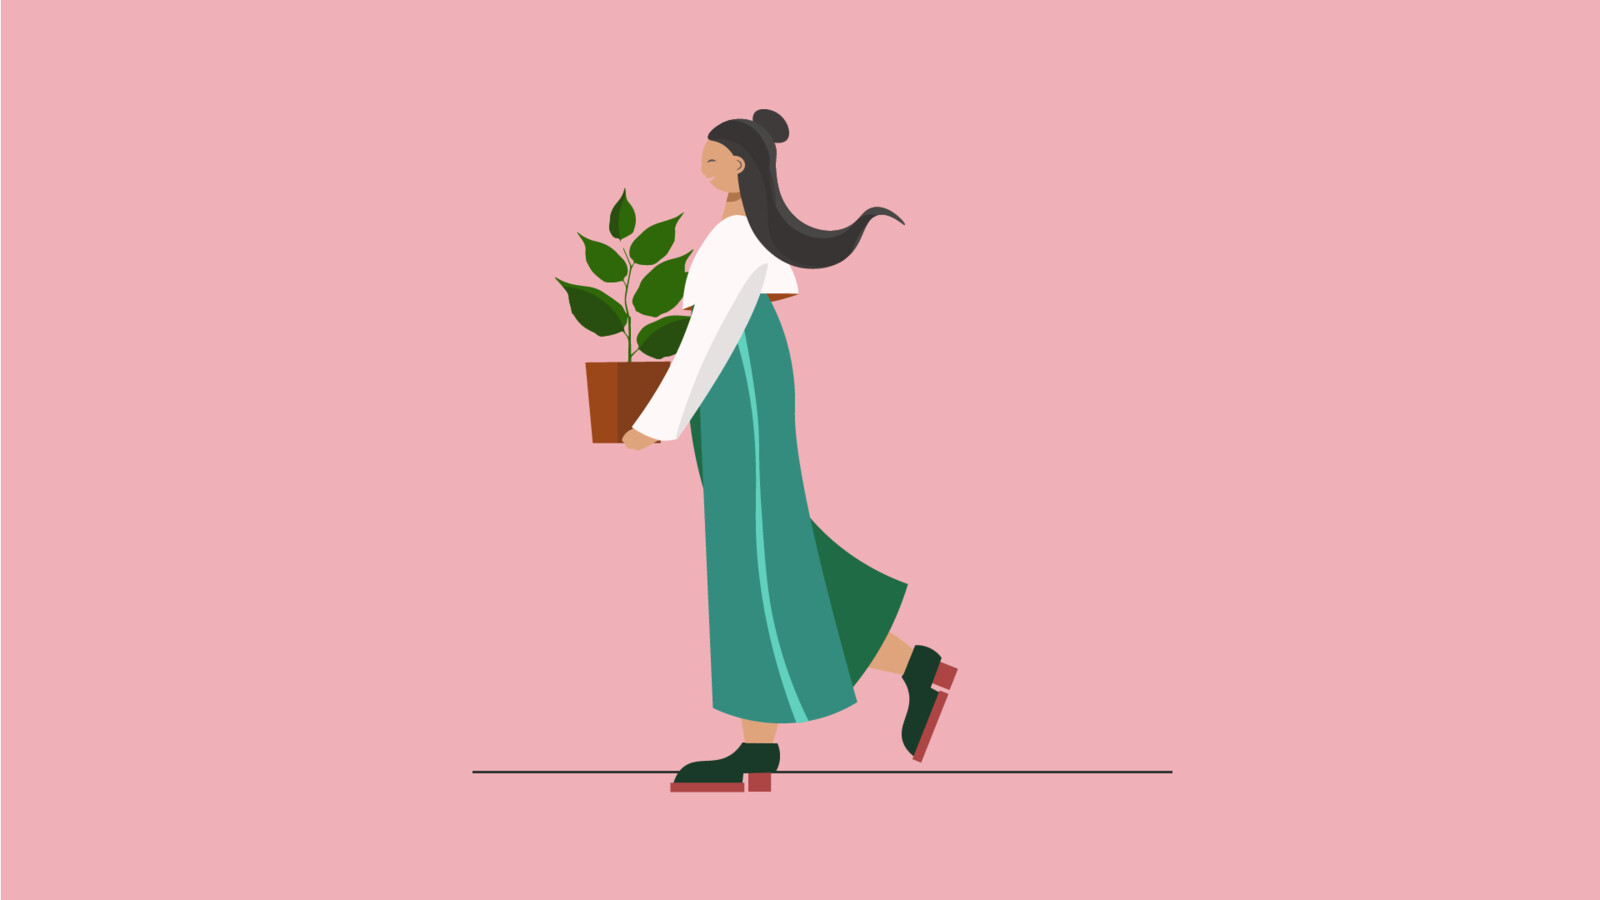 Woman and plant by illustrator